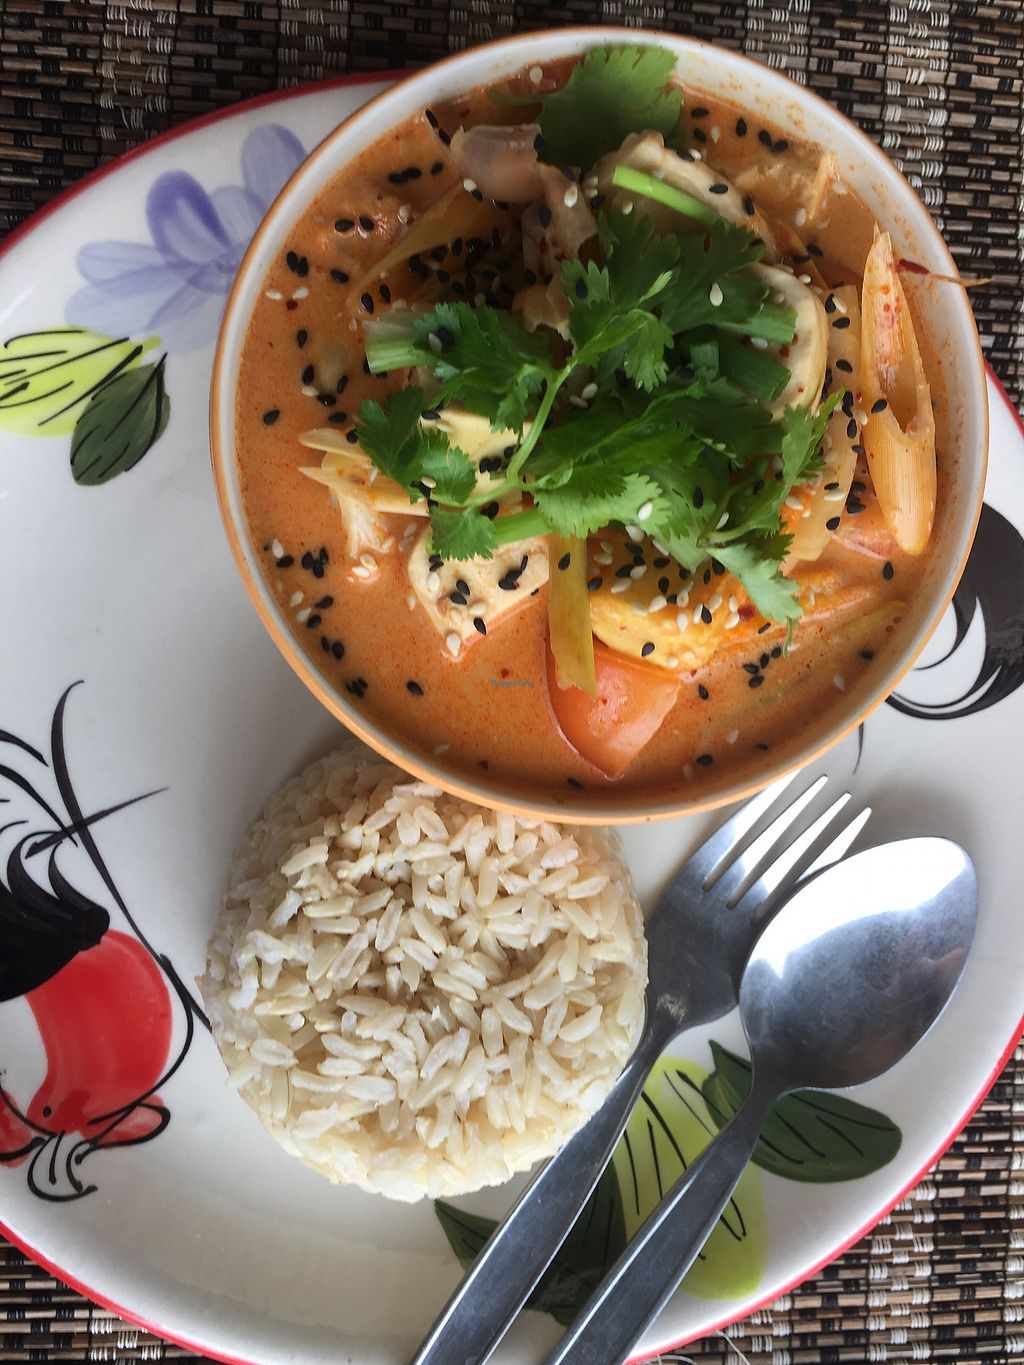 """Photo of Happy Veggie  by <a href=""""/members/profile/___potayto"""">___potayto</a> <br/>Tom yum soup <br/> November 4, 2017  - <a href='/contact/abuse/image/83999/321718'>Report</a>"""